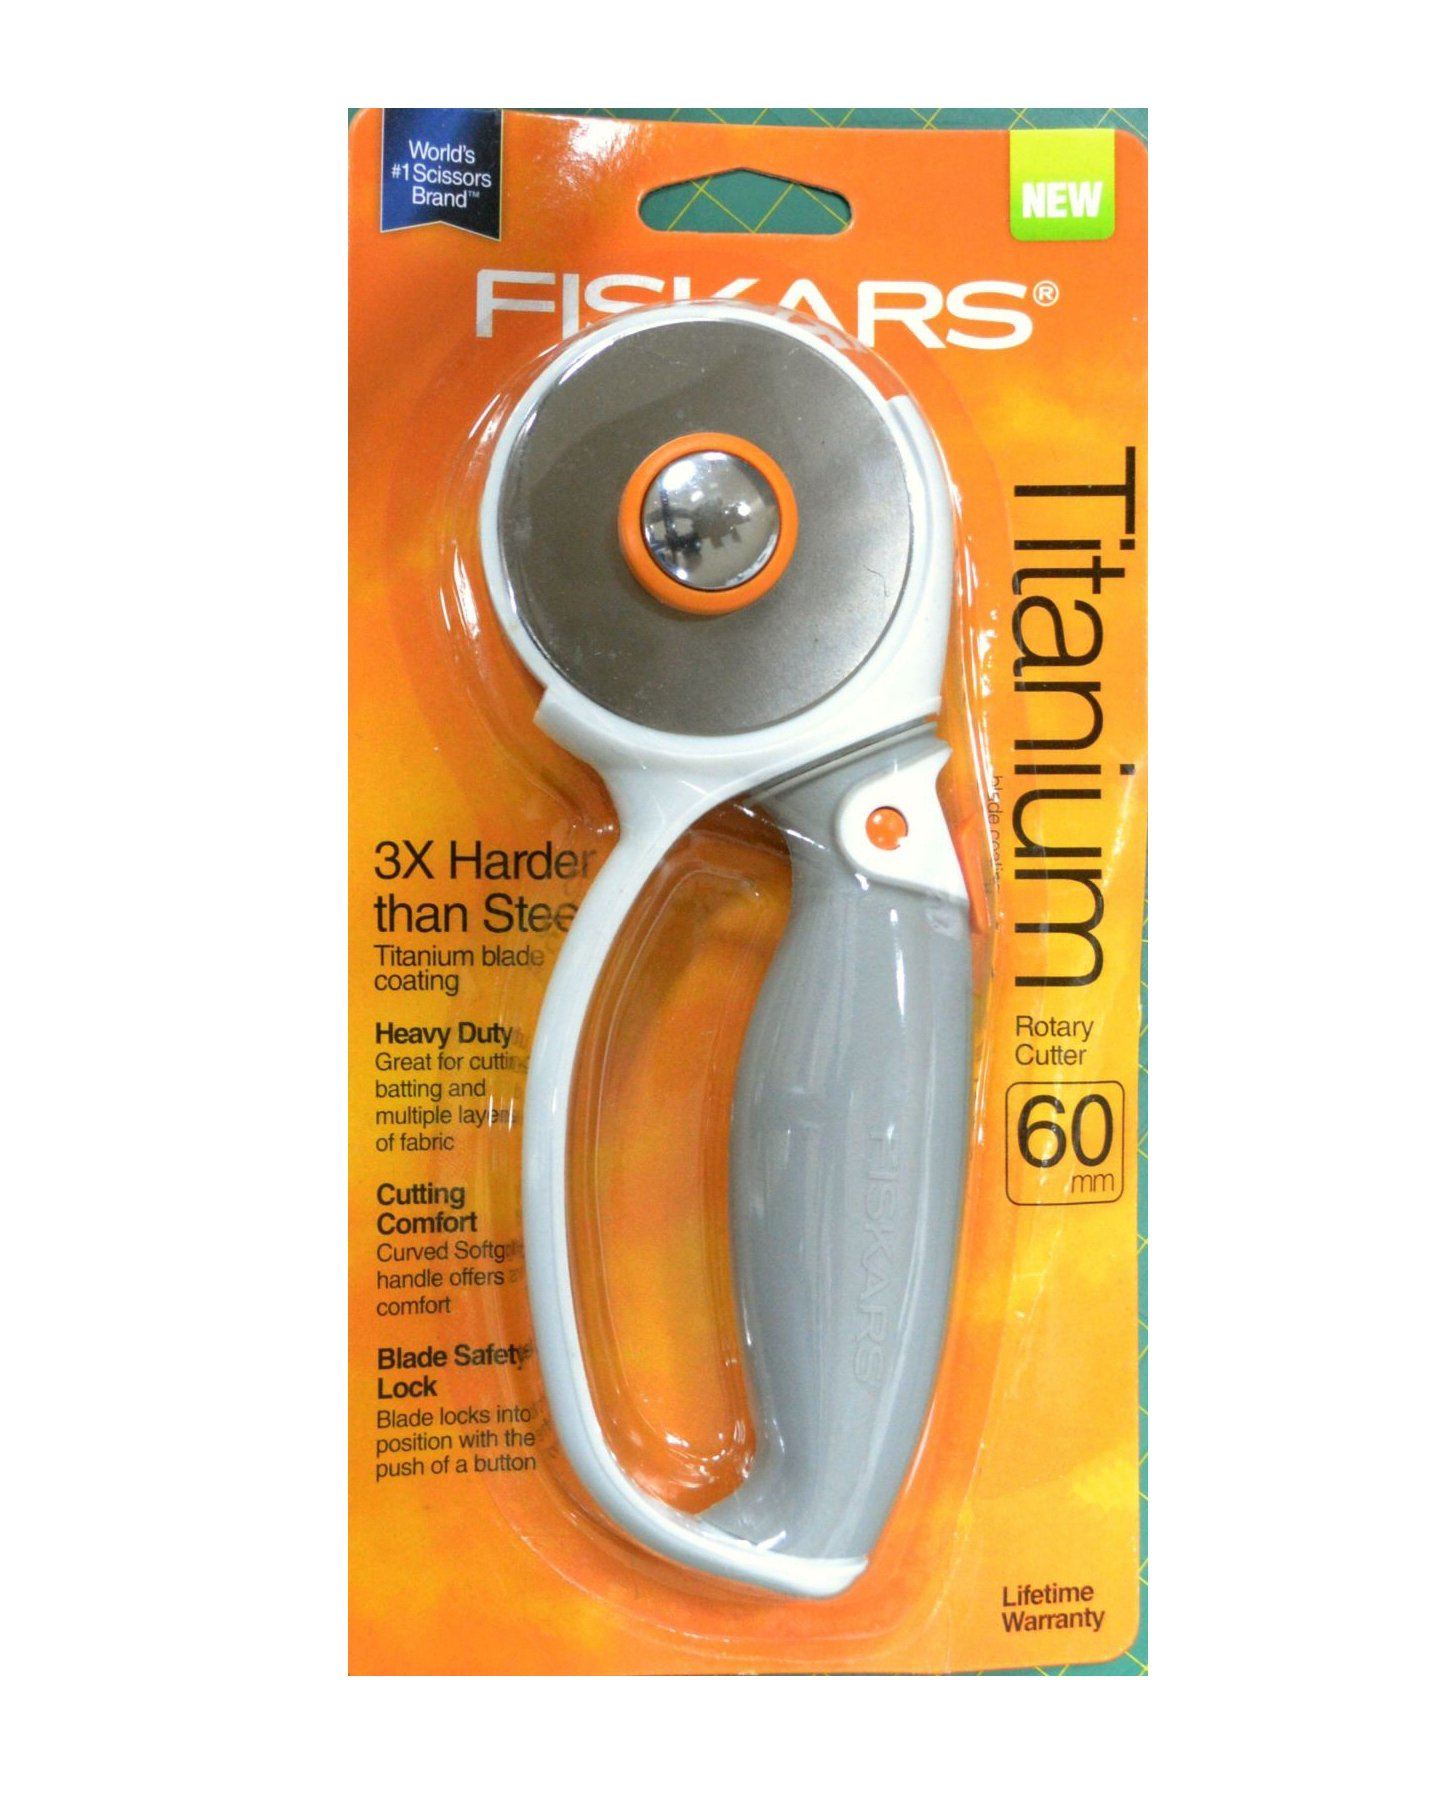 FISKARS 60mm Rotary Cutter, TITANIUM BLADE, with Soft Grip Loop & Safety Blade Lock. Titanium Blade Coating - 3X harder than steel All-Purpose cutting Curved soft grip handle for comfort Blade safety lock